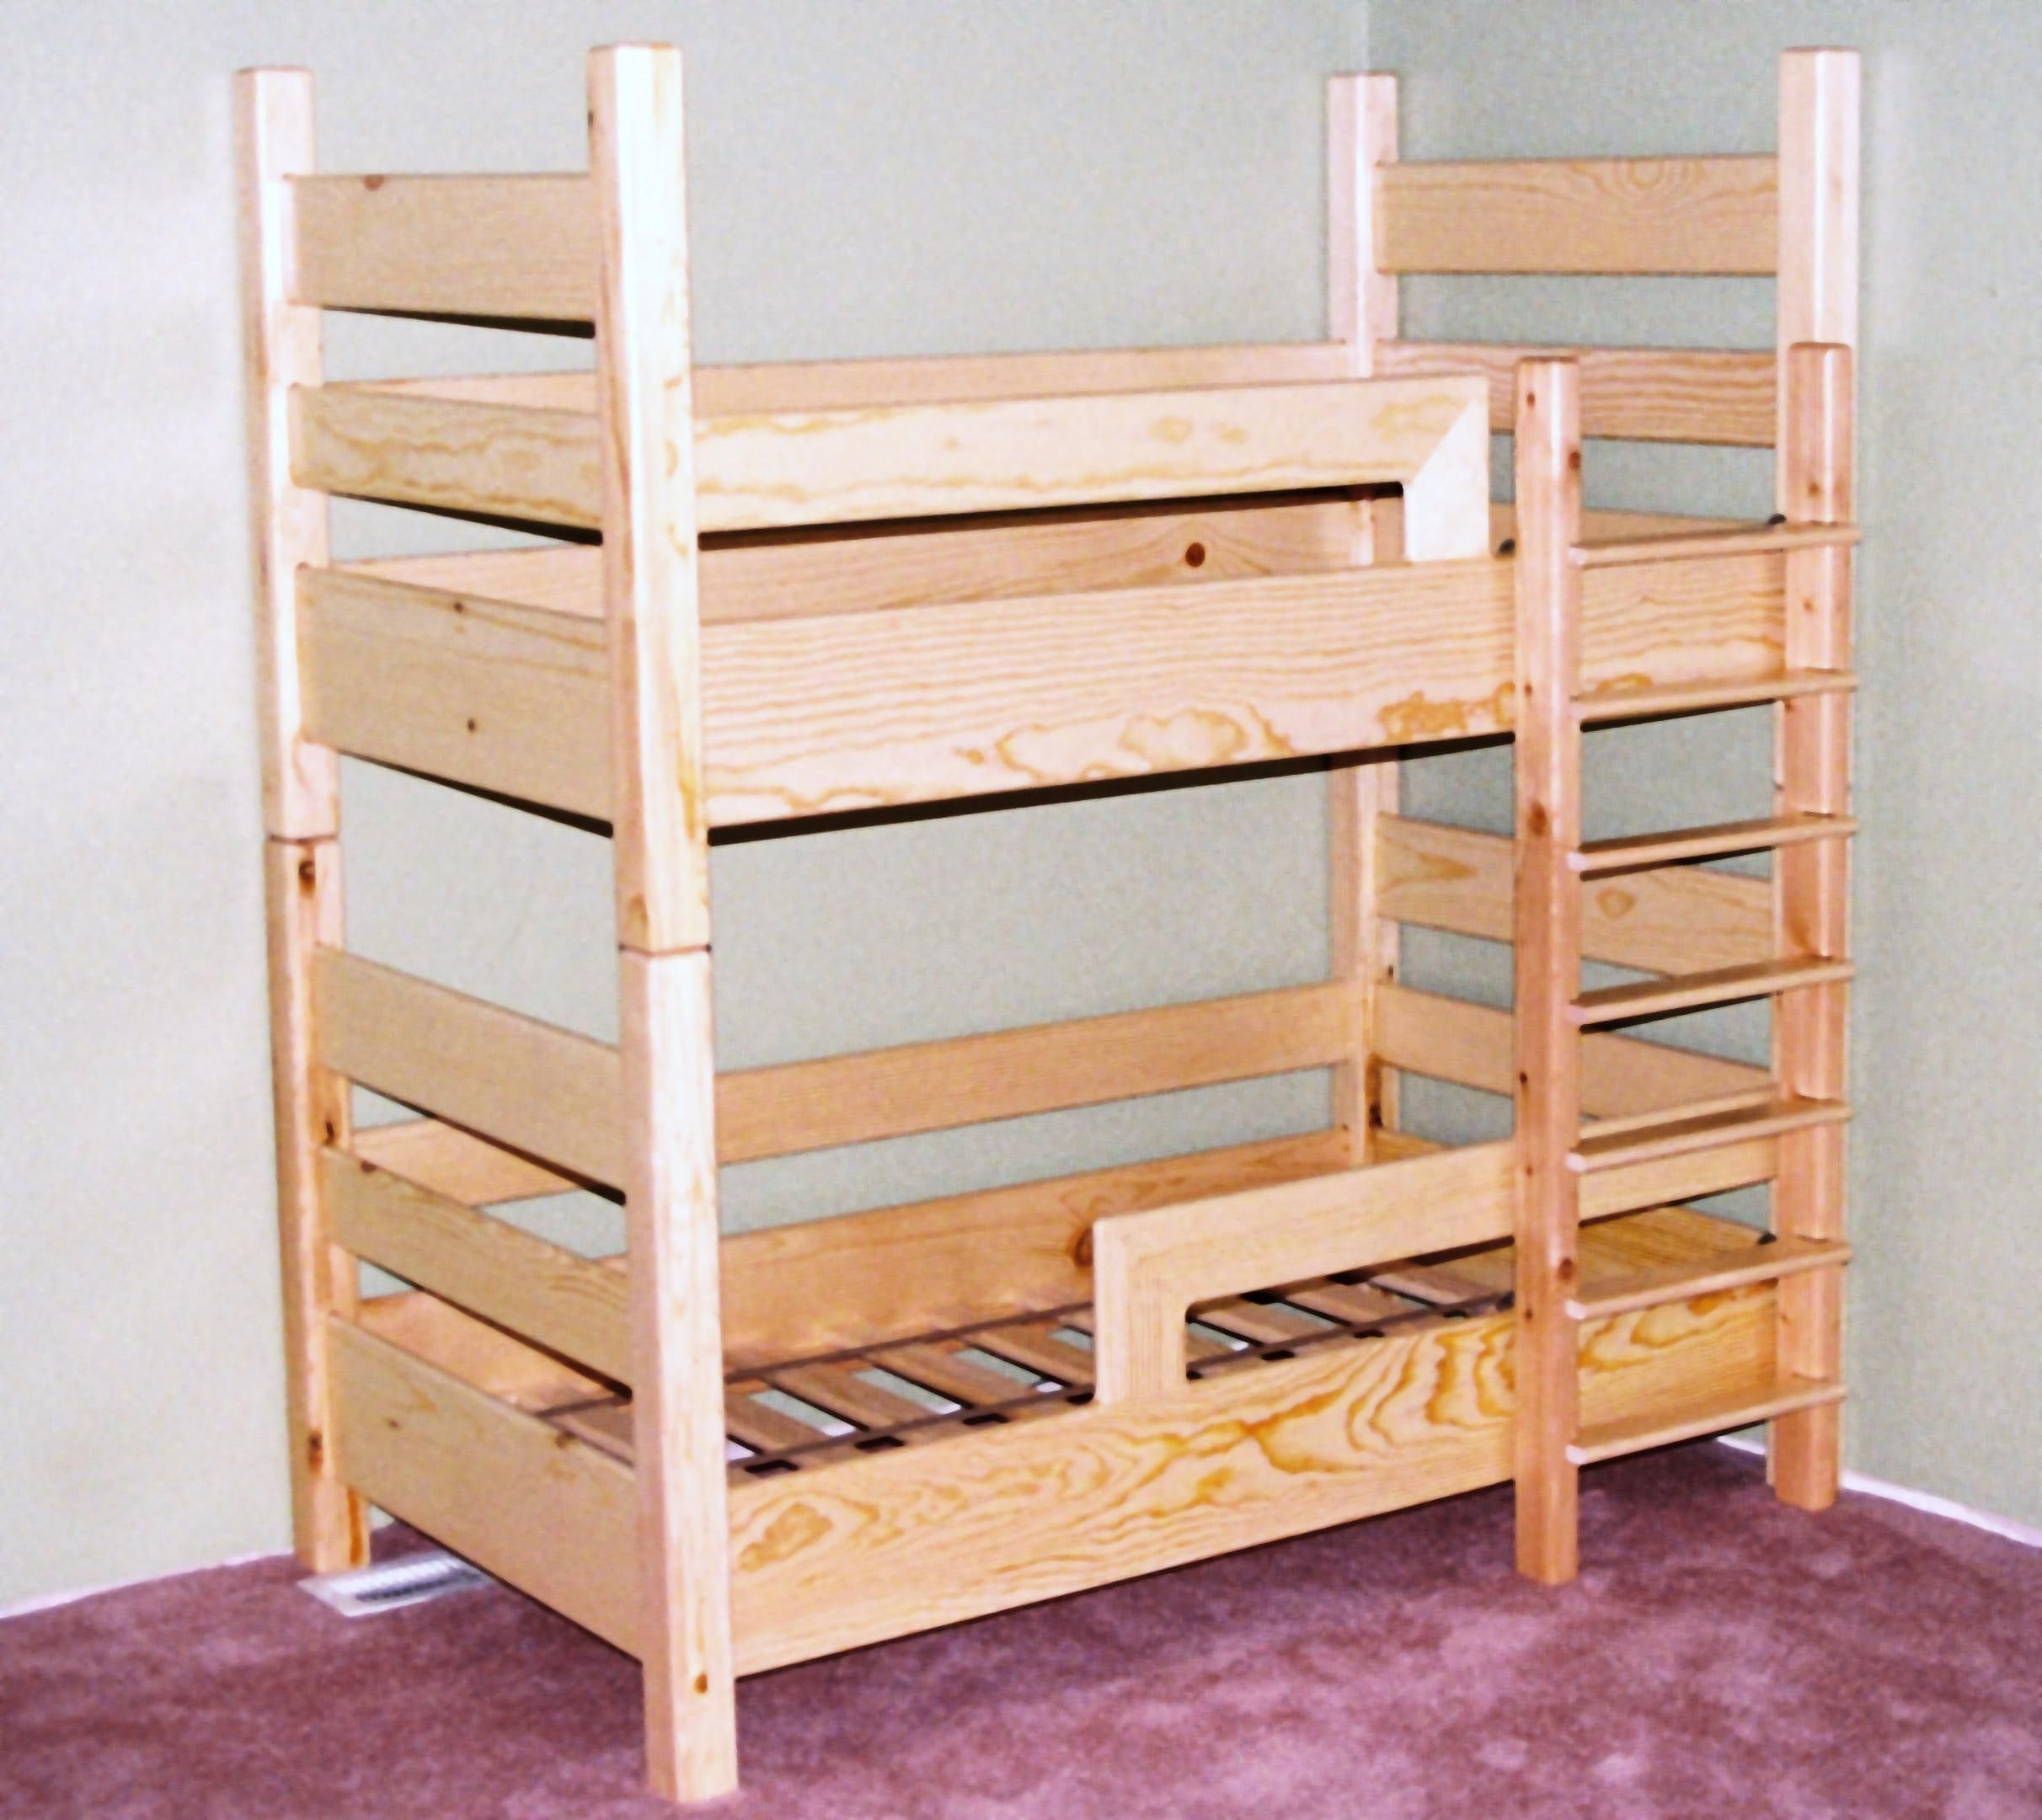 Best A Toddler Bunk Bed Uses Crib Mattresses Love This Idea 400 x 300